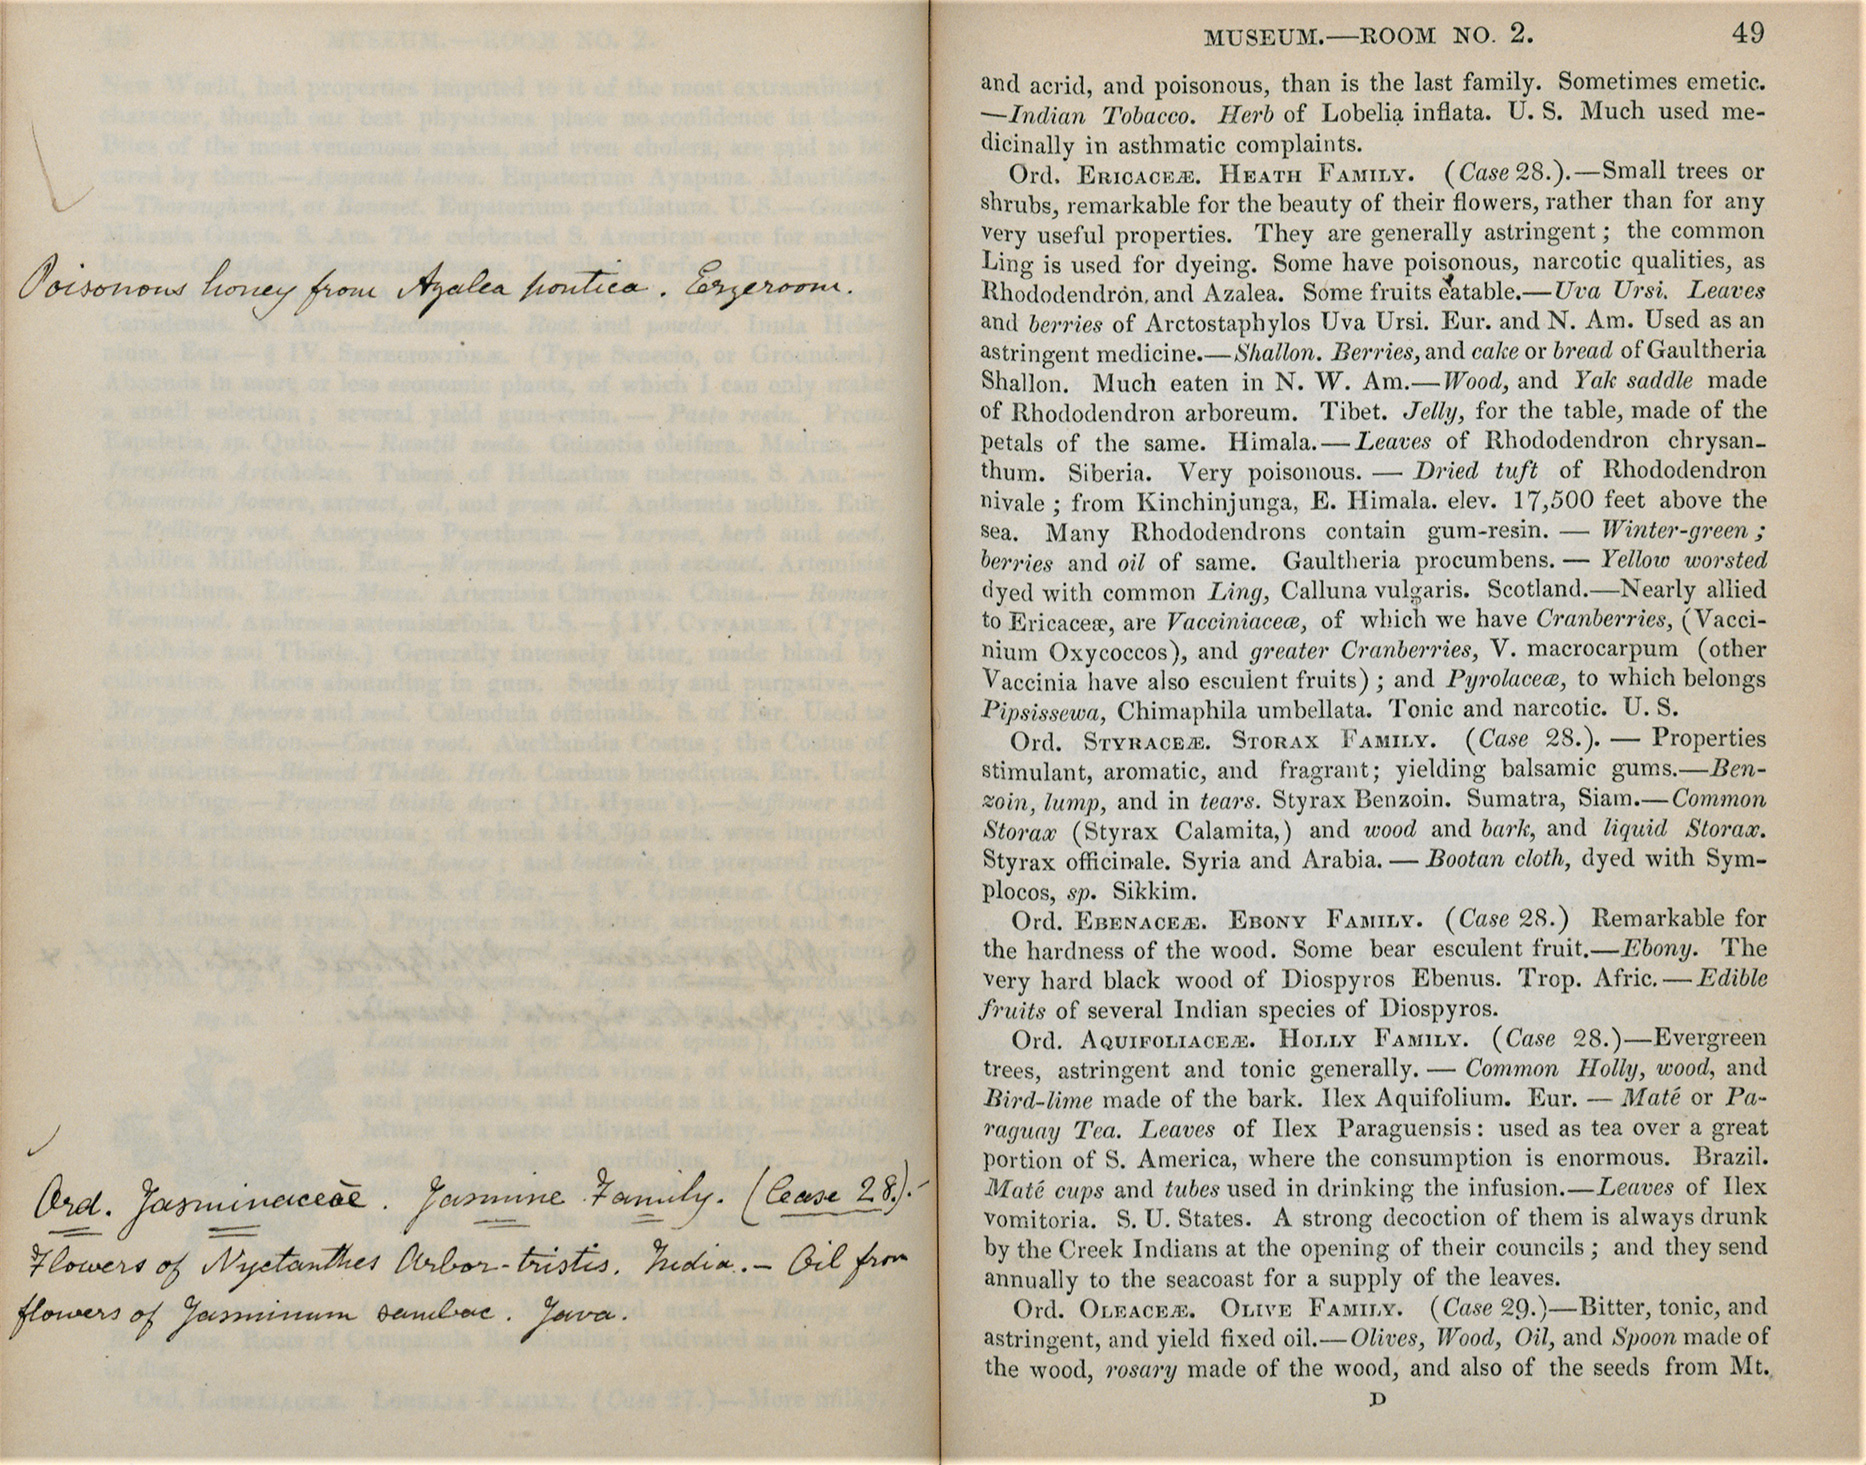 Annotations shown alongside a page from Kew's museum guide book